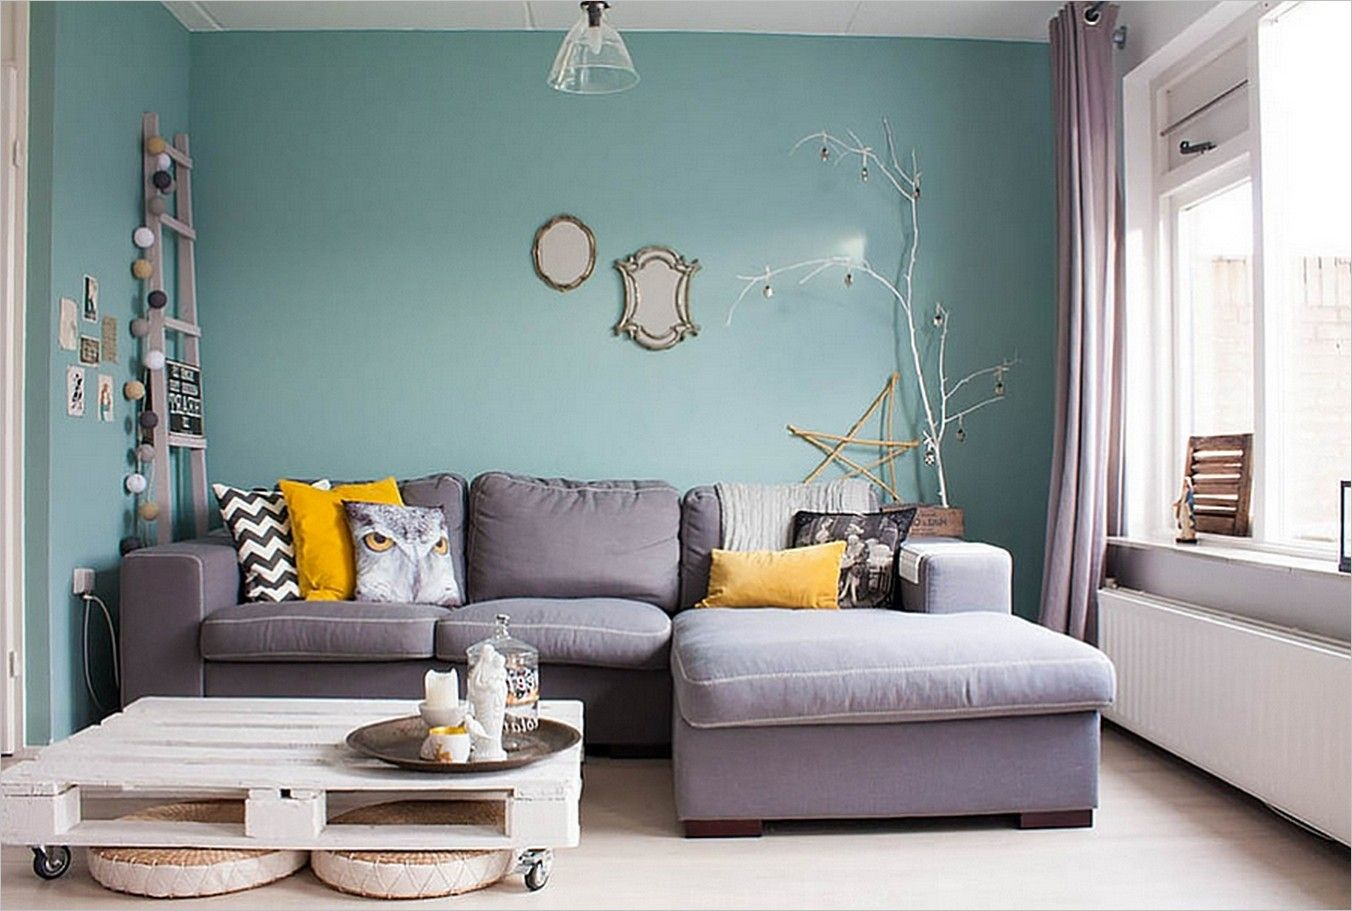 Lovely living room interior desig with blue wall paint for C shaped living room